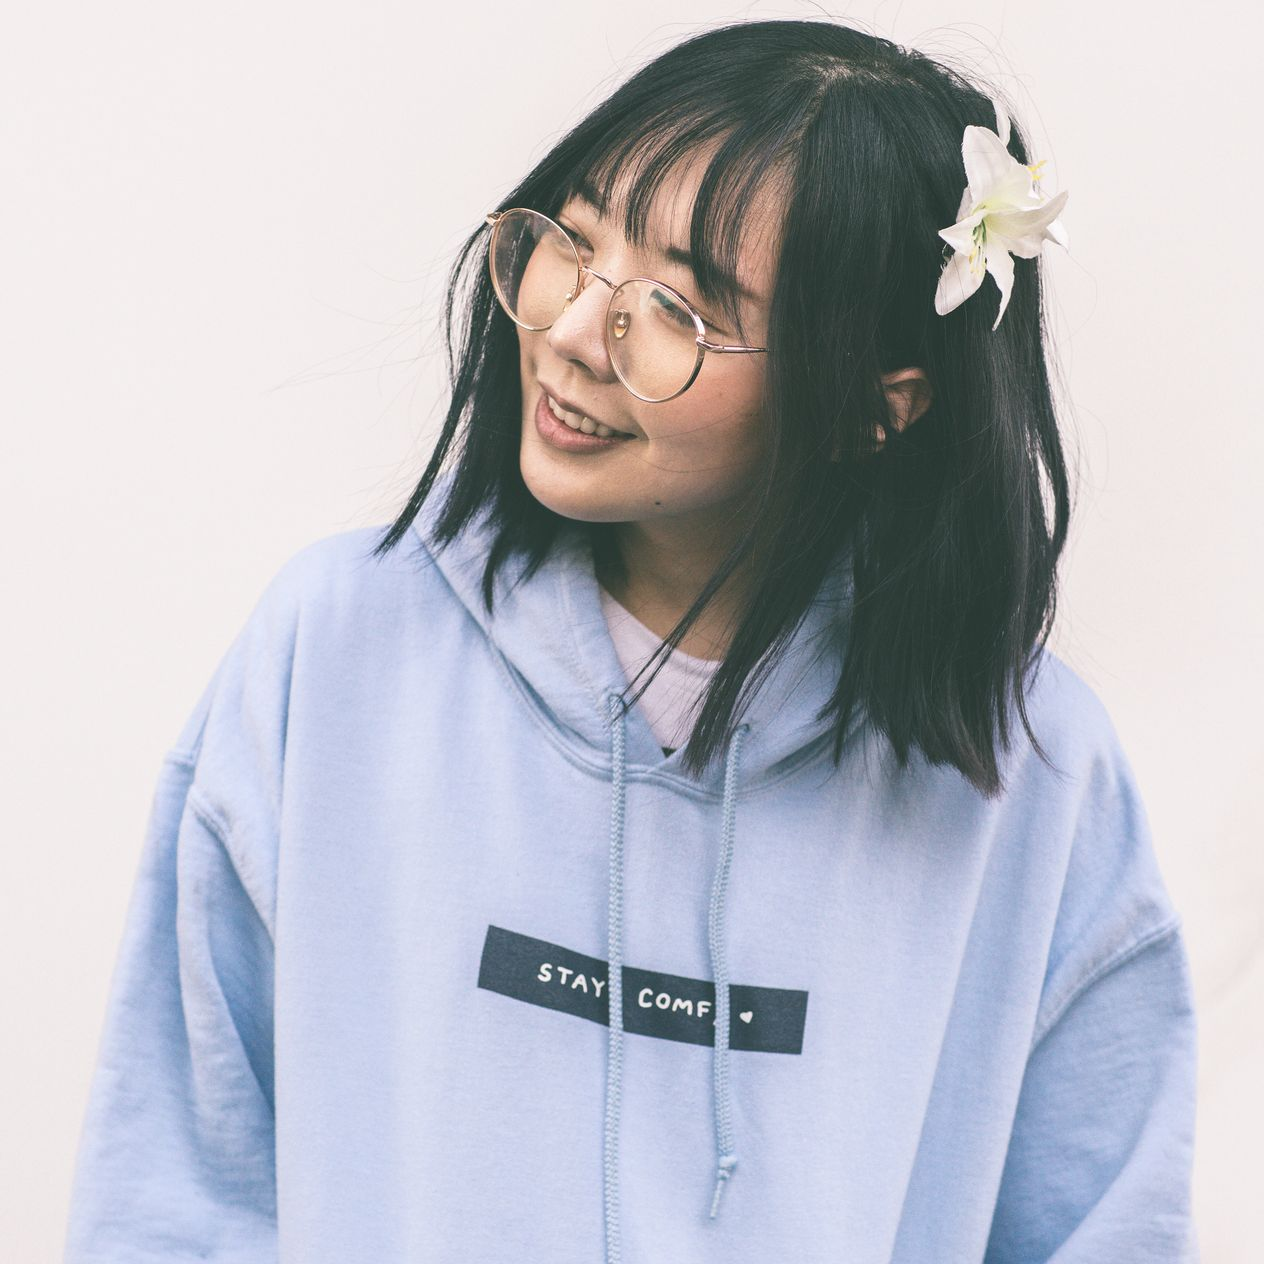 Stay Comfy Hoodie - Standard Edition - LilyPichu Store